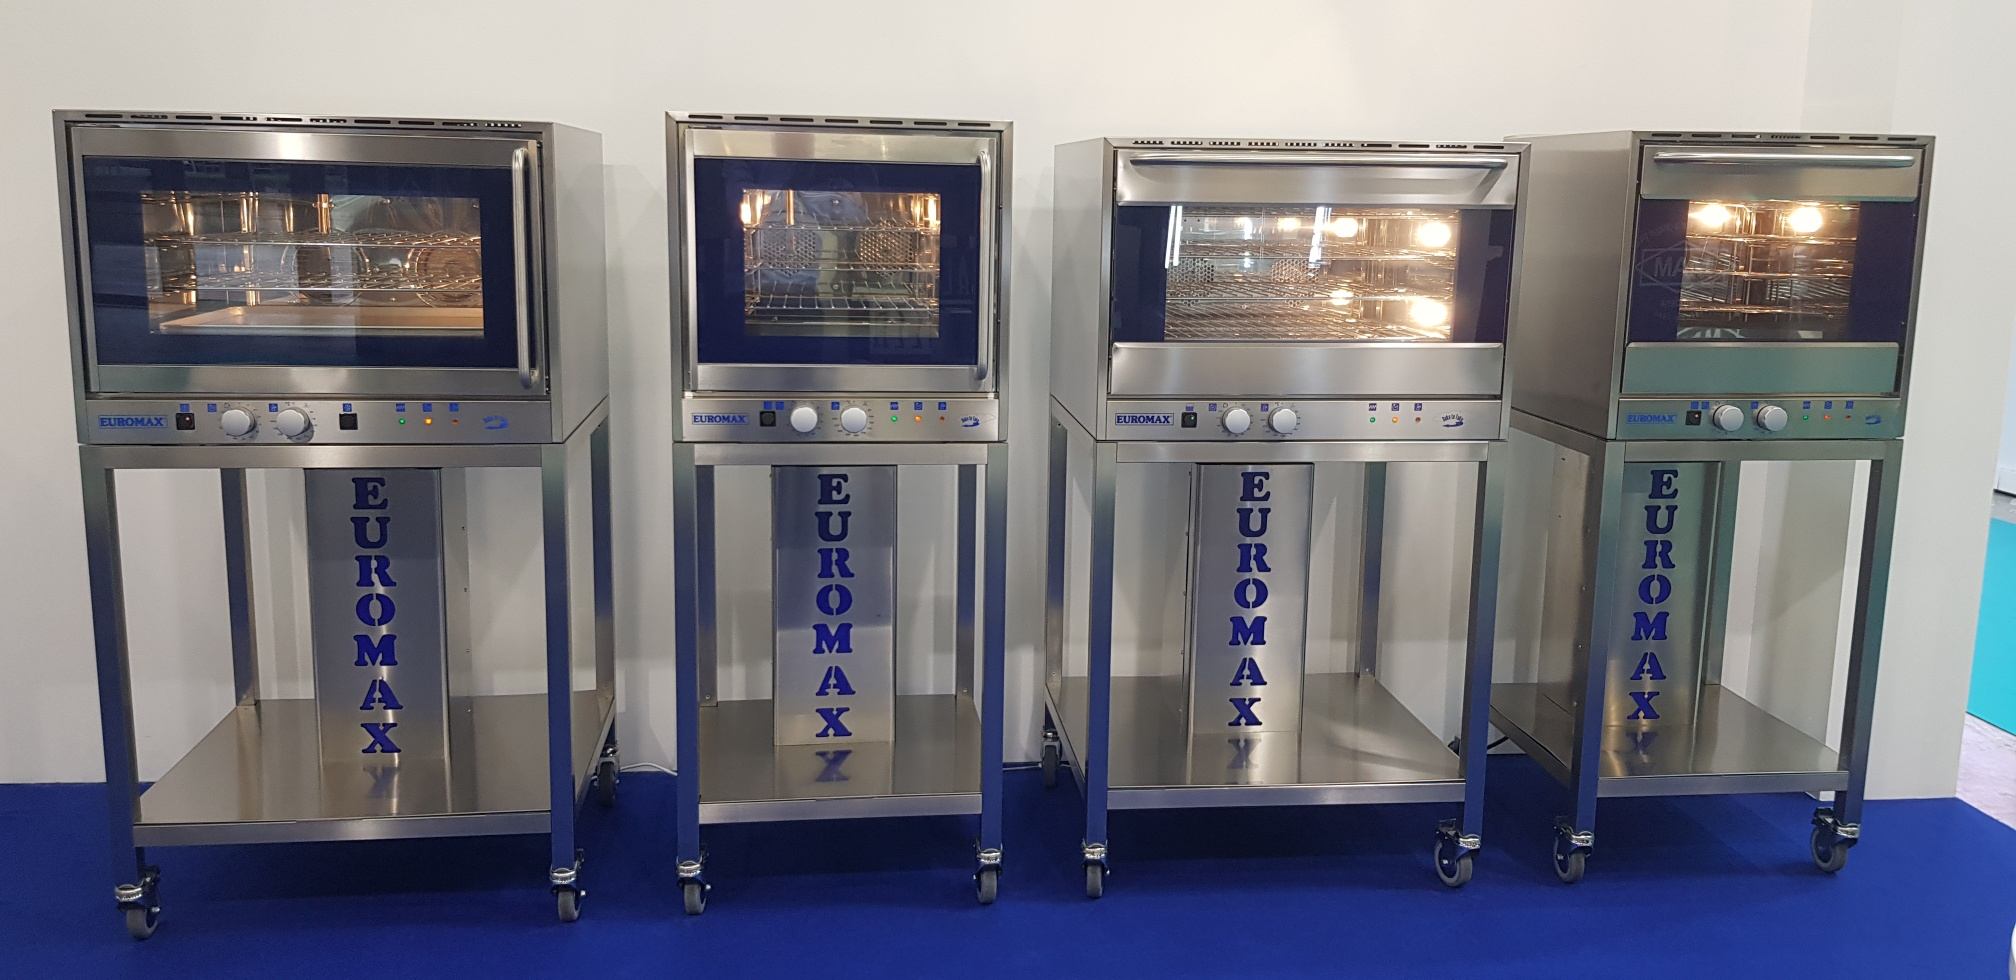 Host 2019 convection ovens